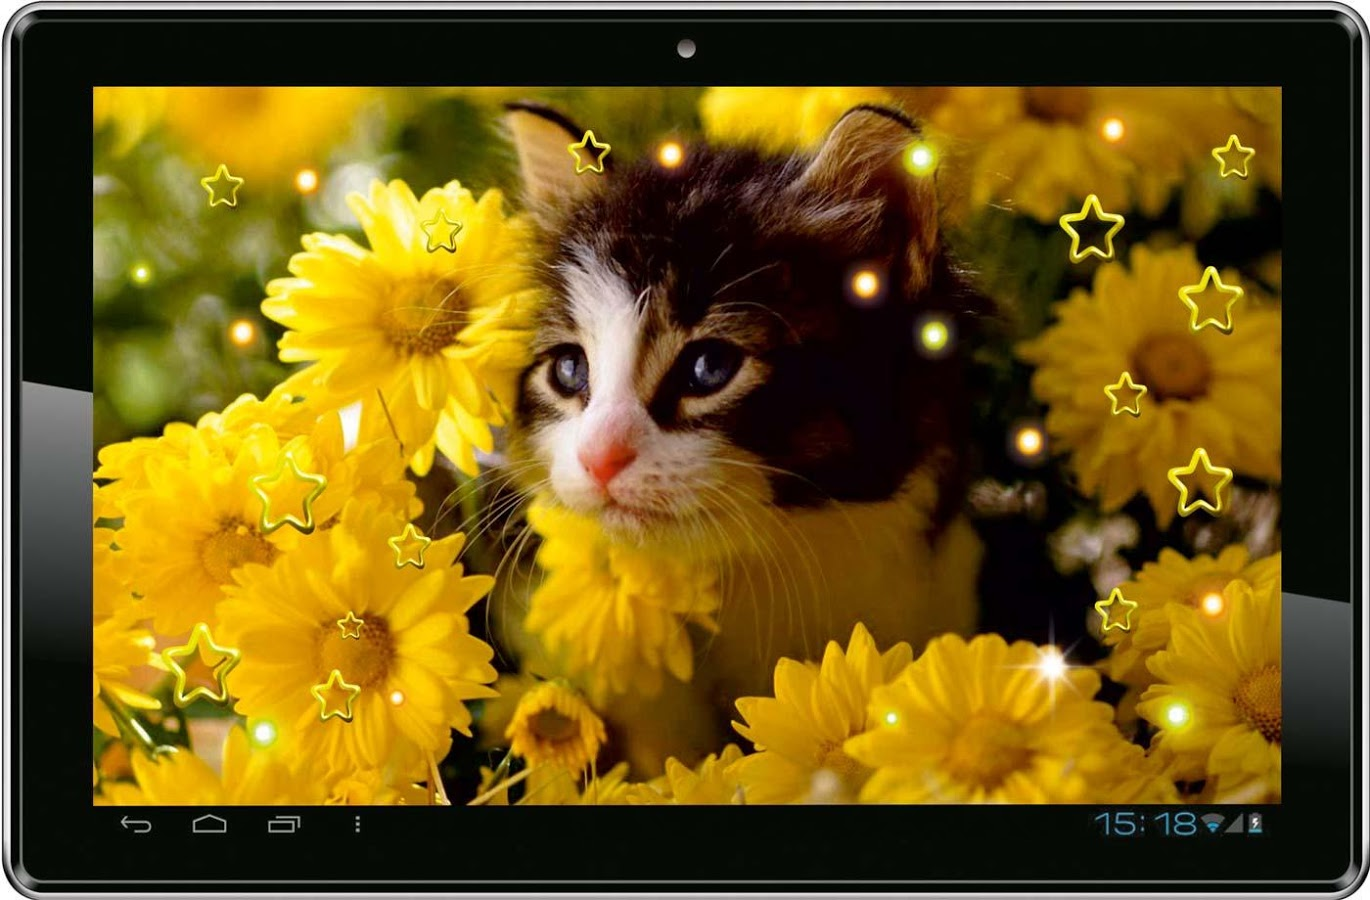 Kitty Sounds live wallpaper   Android Apps on Google Play 1370x900